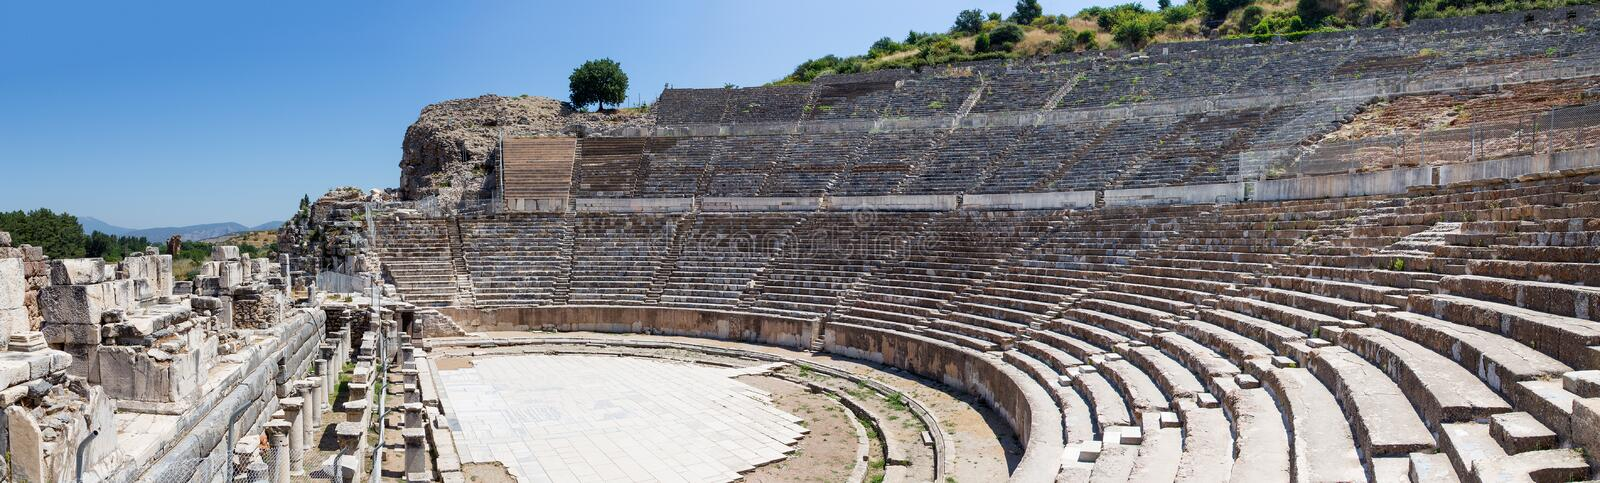 Download Panorama Of The Great Theatre Of Ephesus, Turkey Stock Image - Image of city, archeology: 33785149